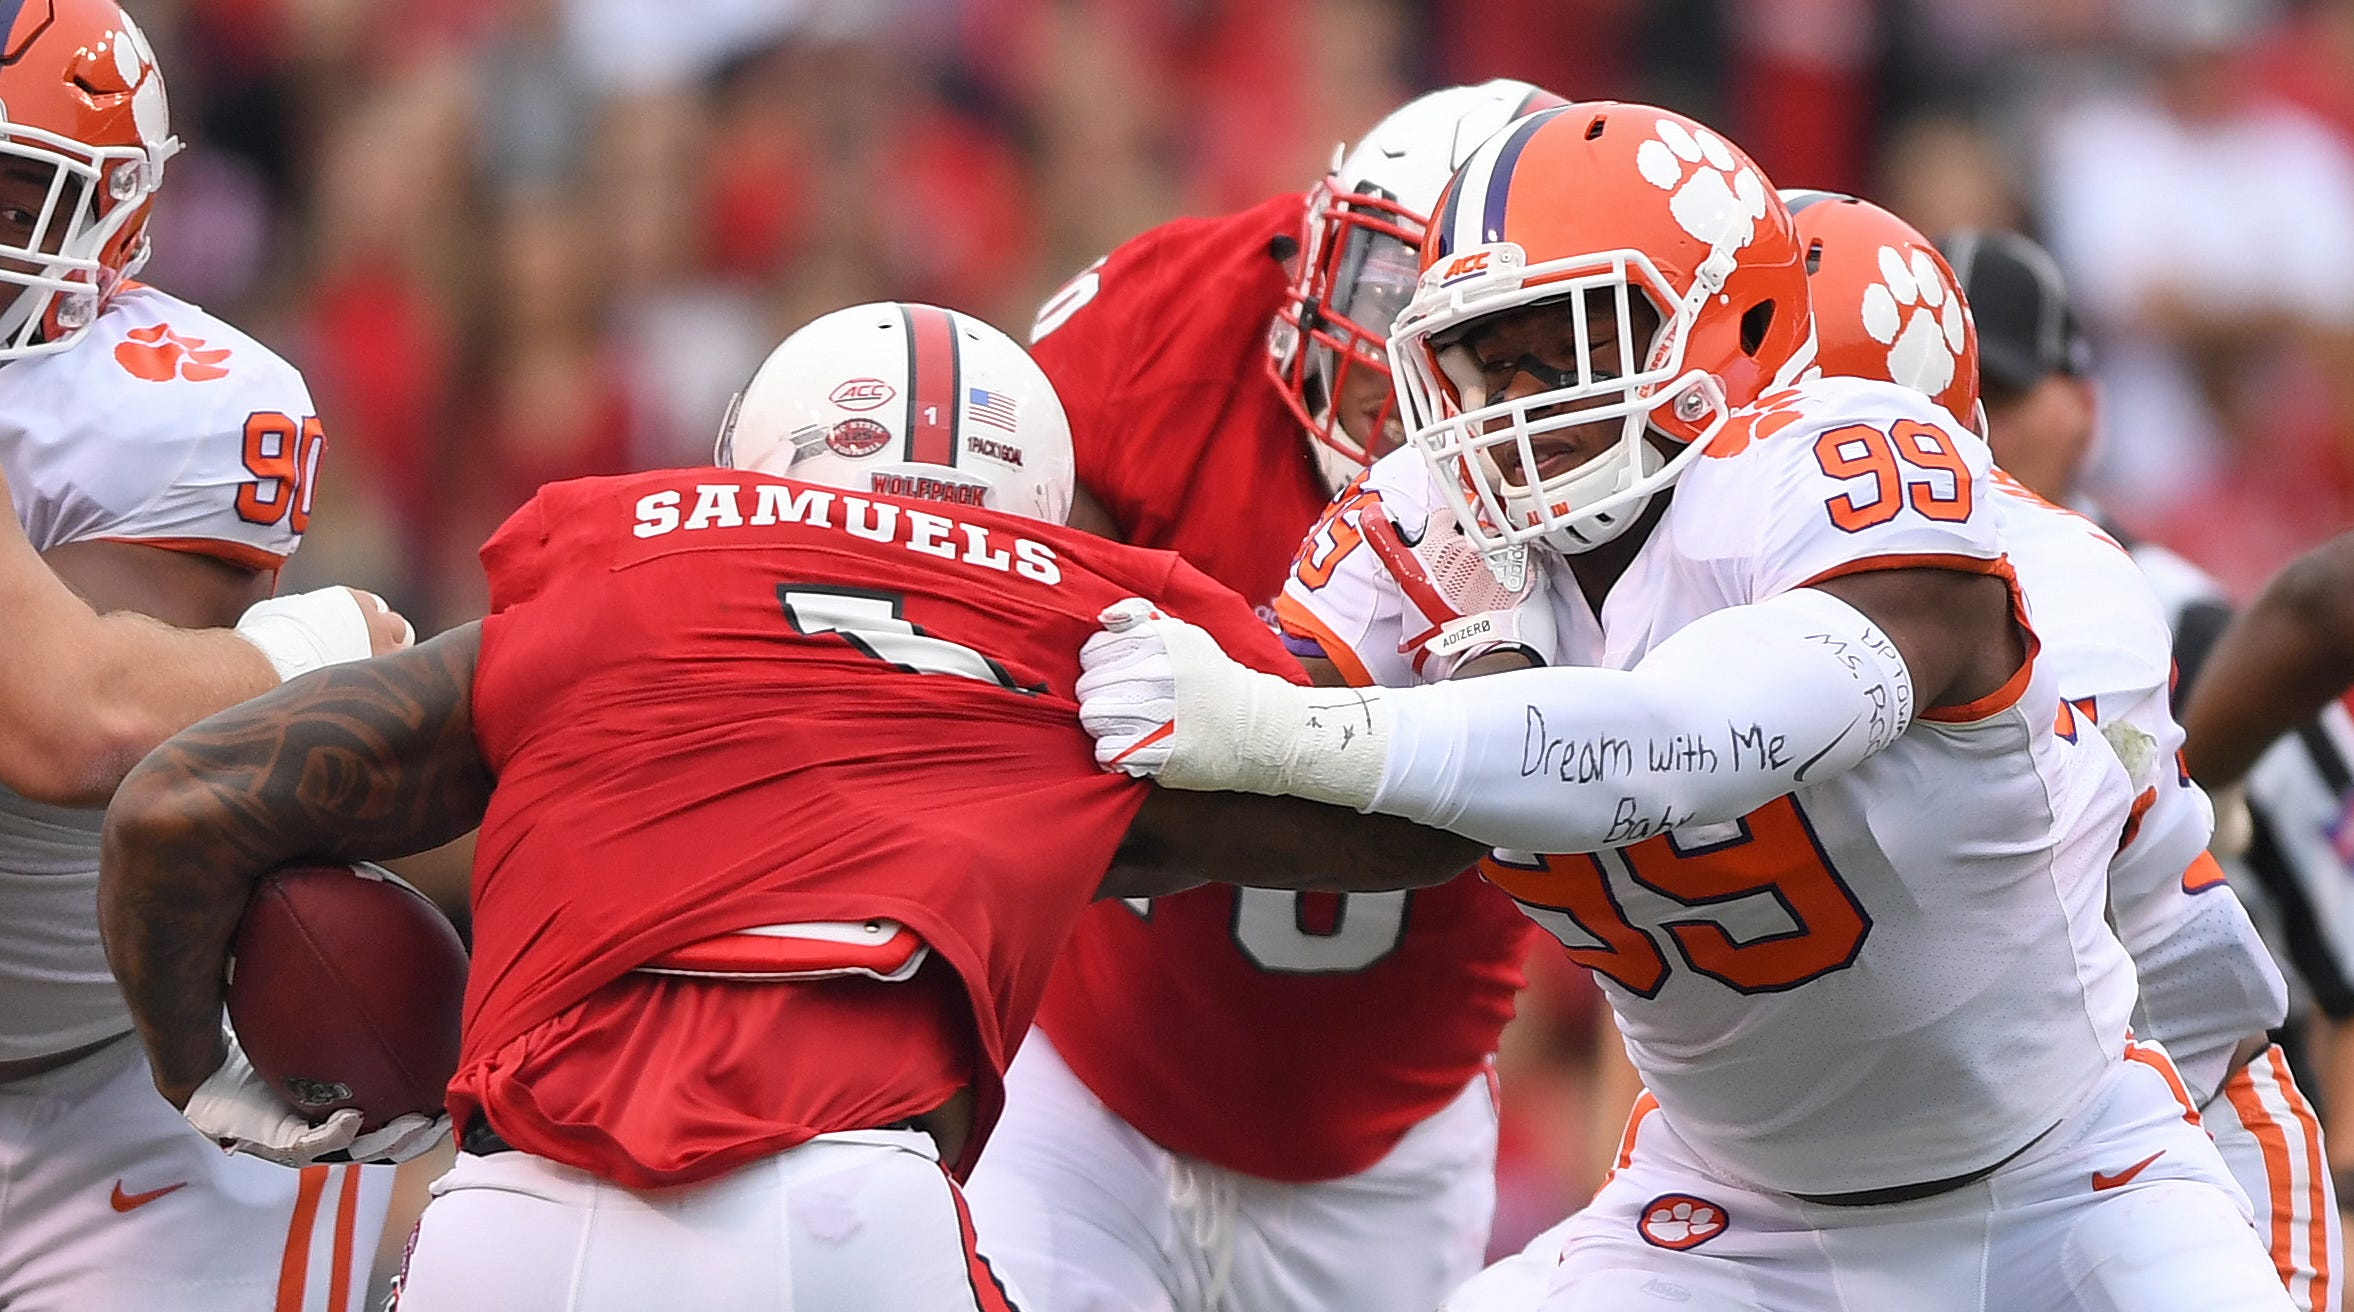 Clemson defensive lineman Clelin Ferrell (99) wraps up NC State's Jaylen Samuels (1) during the 1st quarter on Saturday, November 4, 2017 at N.C. State's Carter Finley Stadium in Raleigh, N.C.